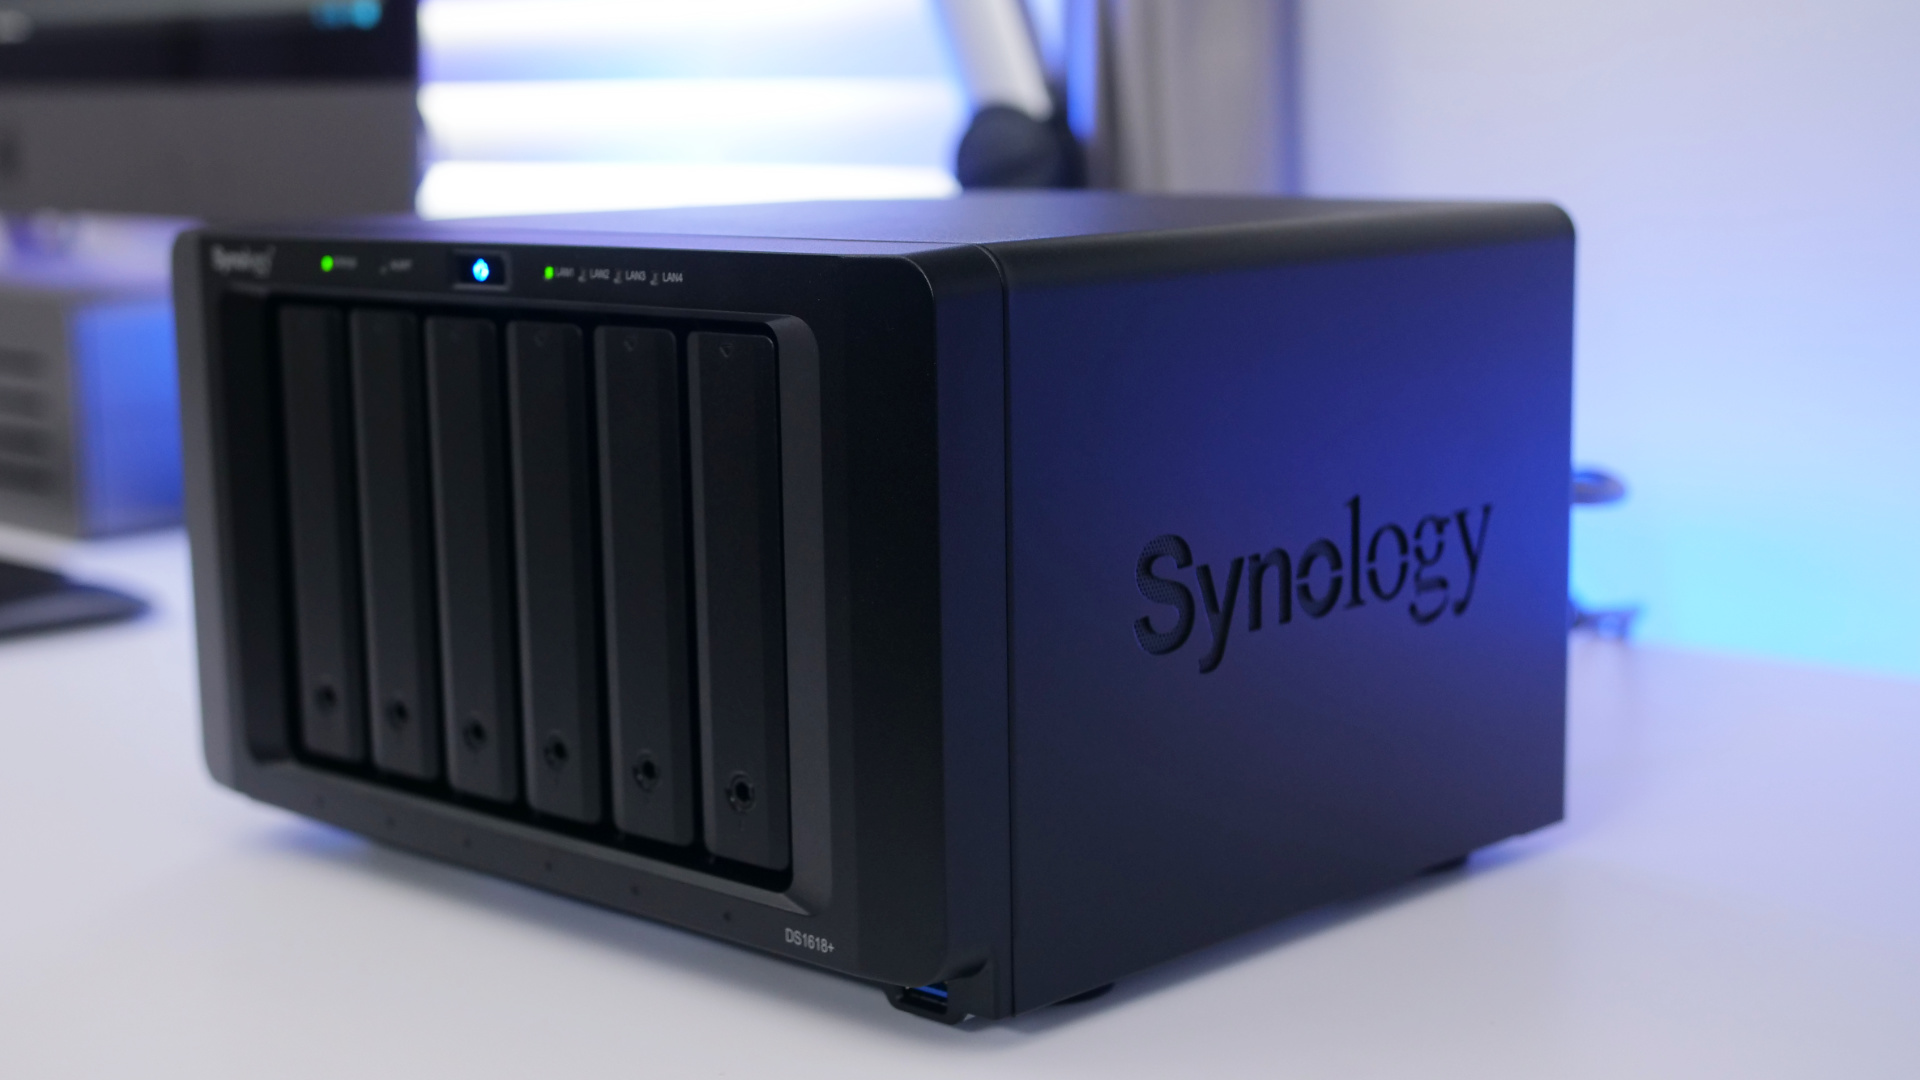 Back to the Mac 009: How to use a Synology NAS for Time Machine backups [Video]